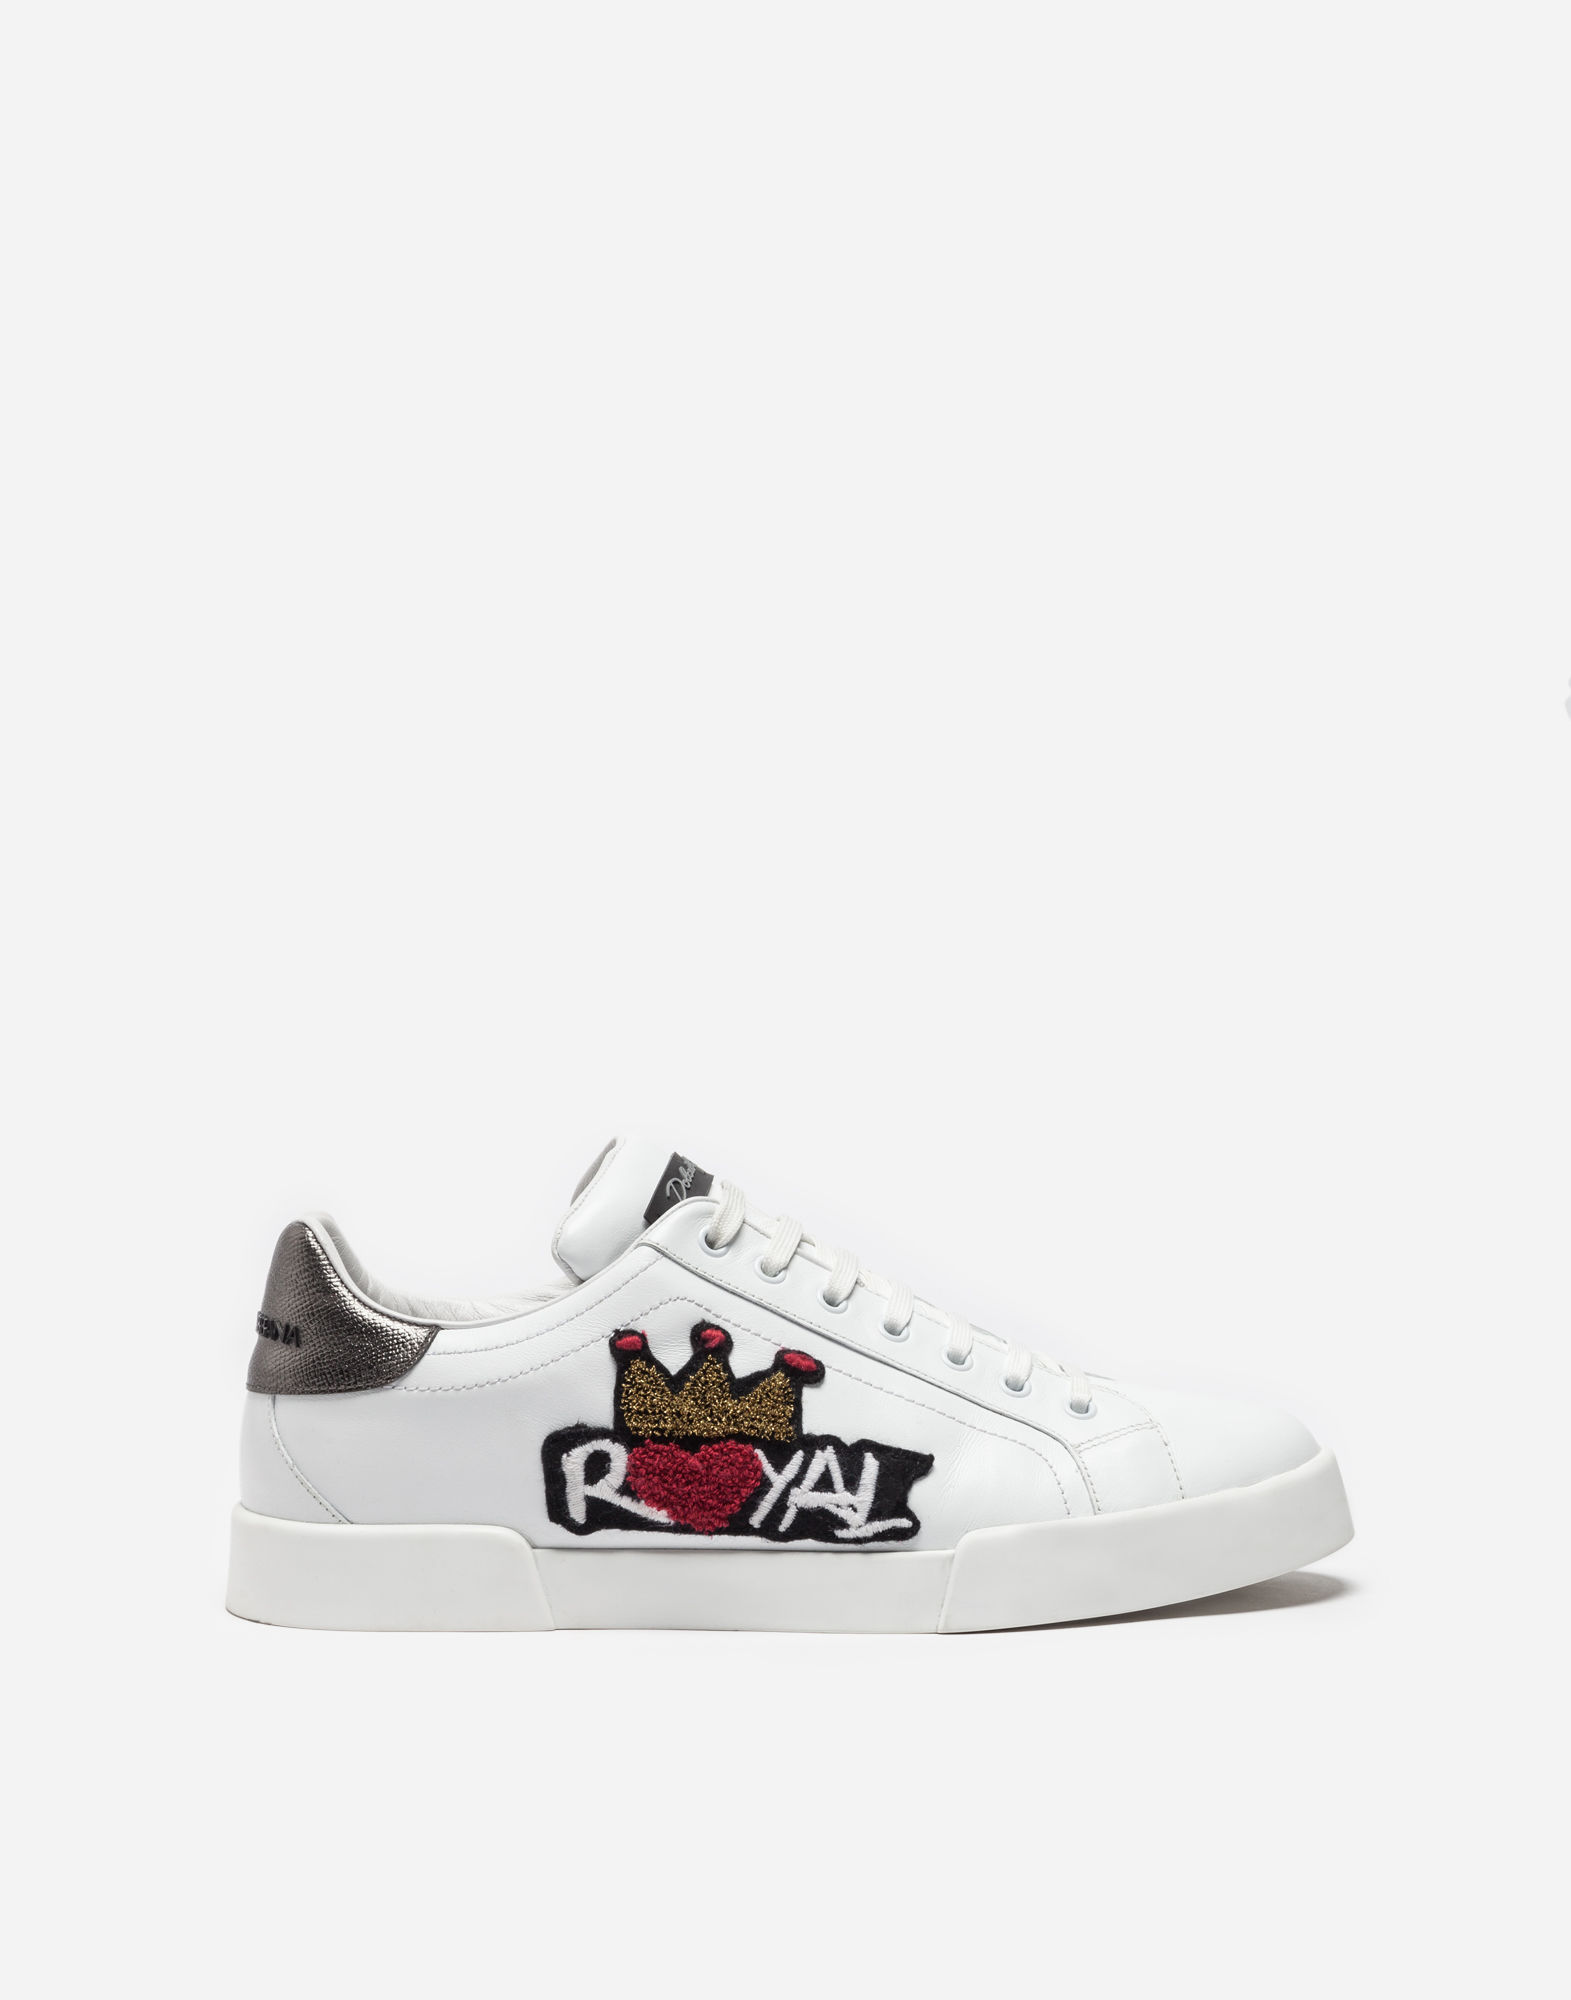 Dolce & Gabbana Leather Sneakers With Patches nN3L0T7